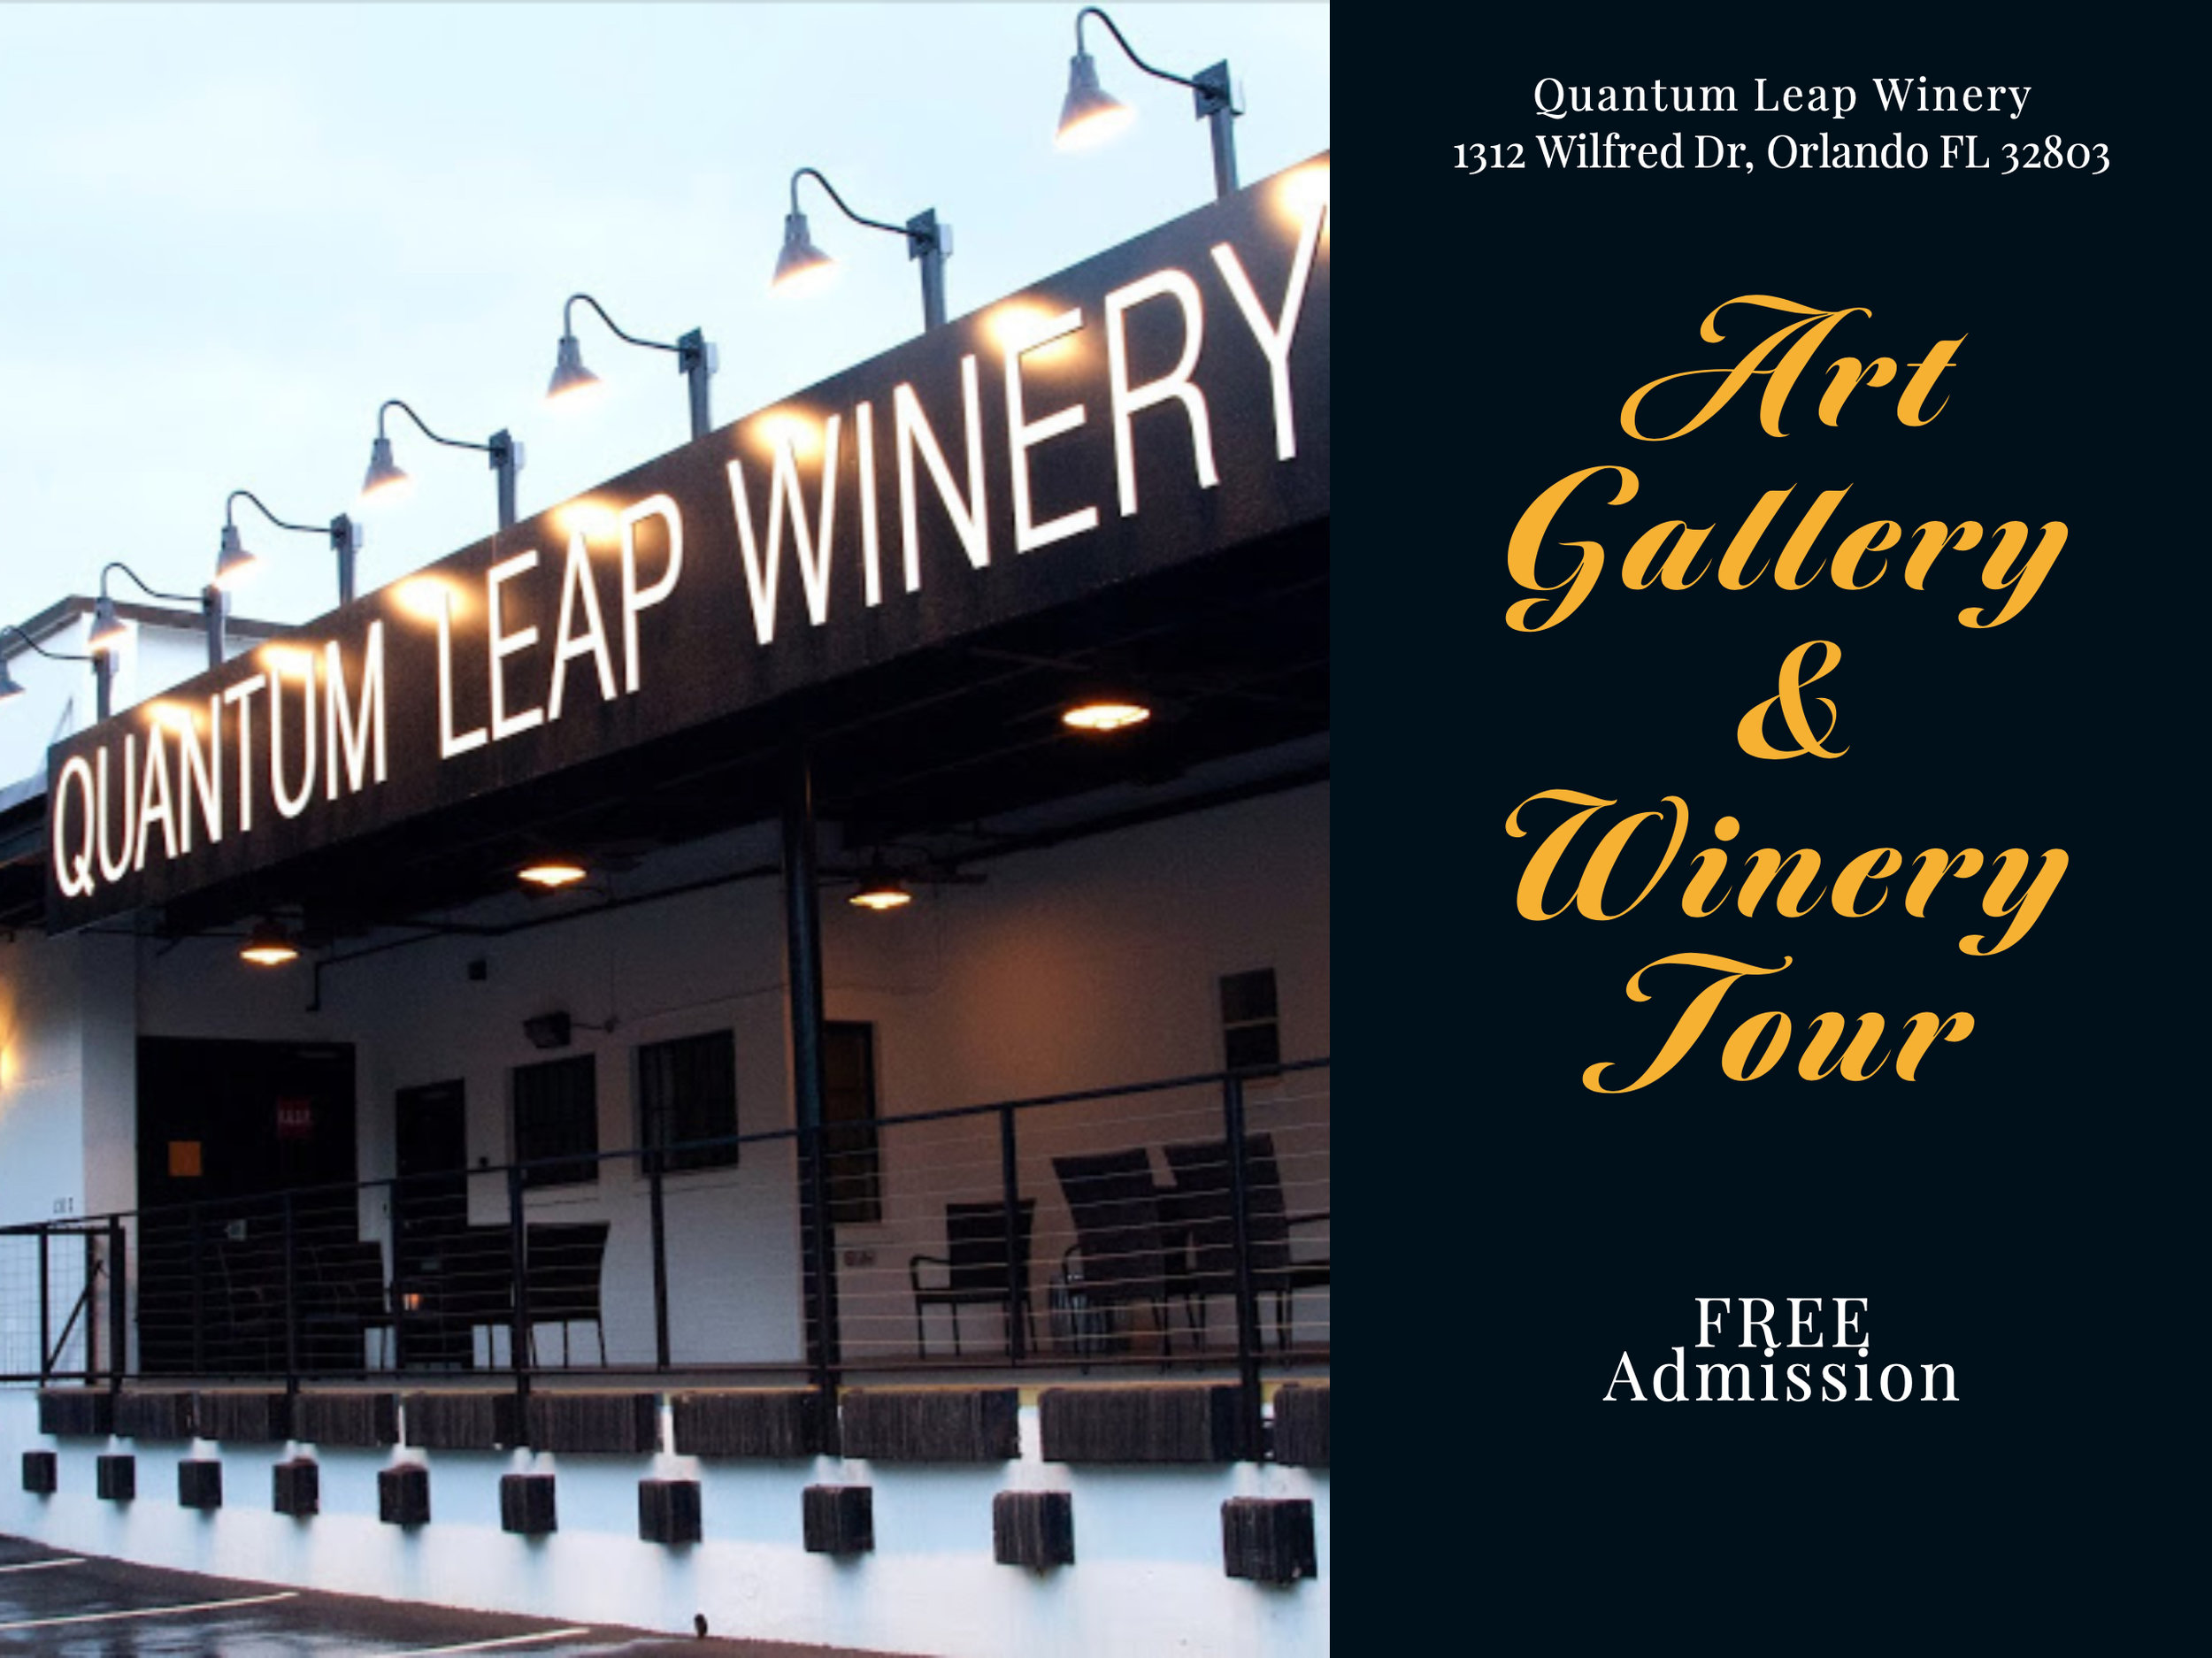 """""""Picturesque"""" - Quantum Leap Winery - 1312 Wilfred Drive Orlando, FL 32803Join us for a curator lead tour of this landscape art exhibition at the Quantum Leap Winery. This free tour includes a complimentary glass of bubbly. Learn about the winery and how the wine is produced as you also learn about the art on display.Please RSVP for this event as spaces are limited!All Artwork is for Sale."""